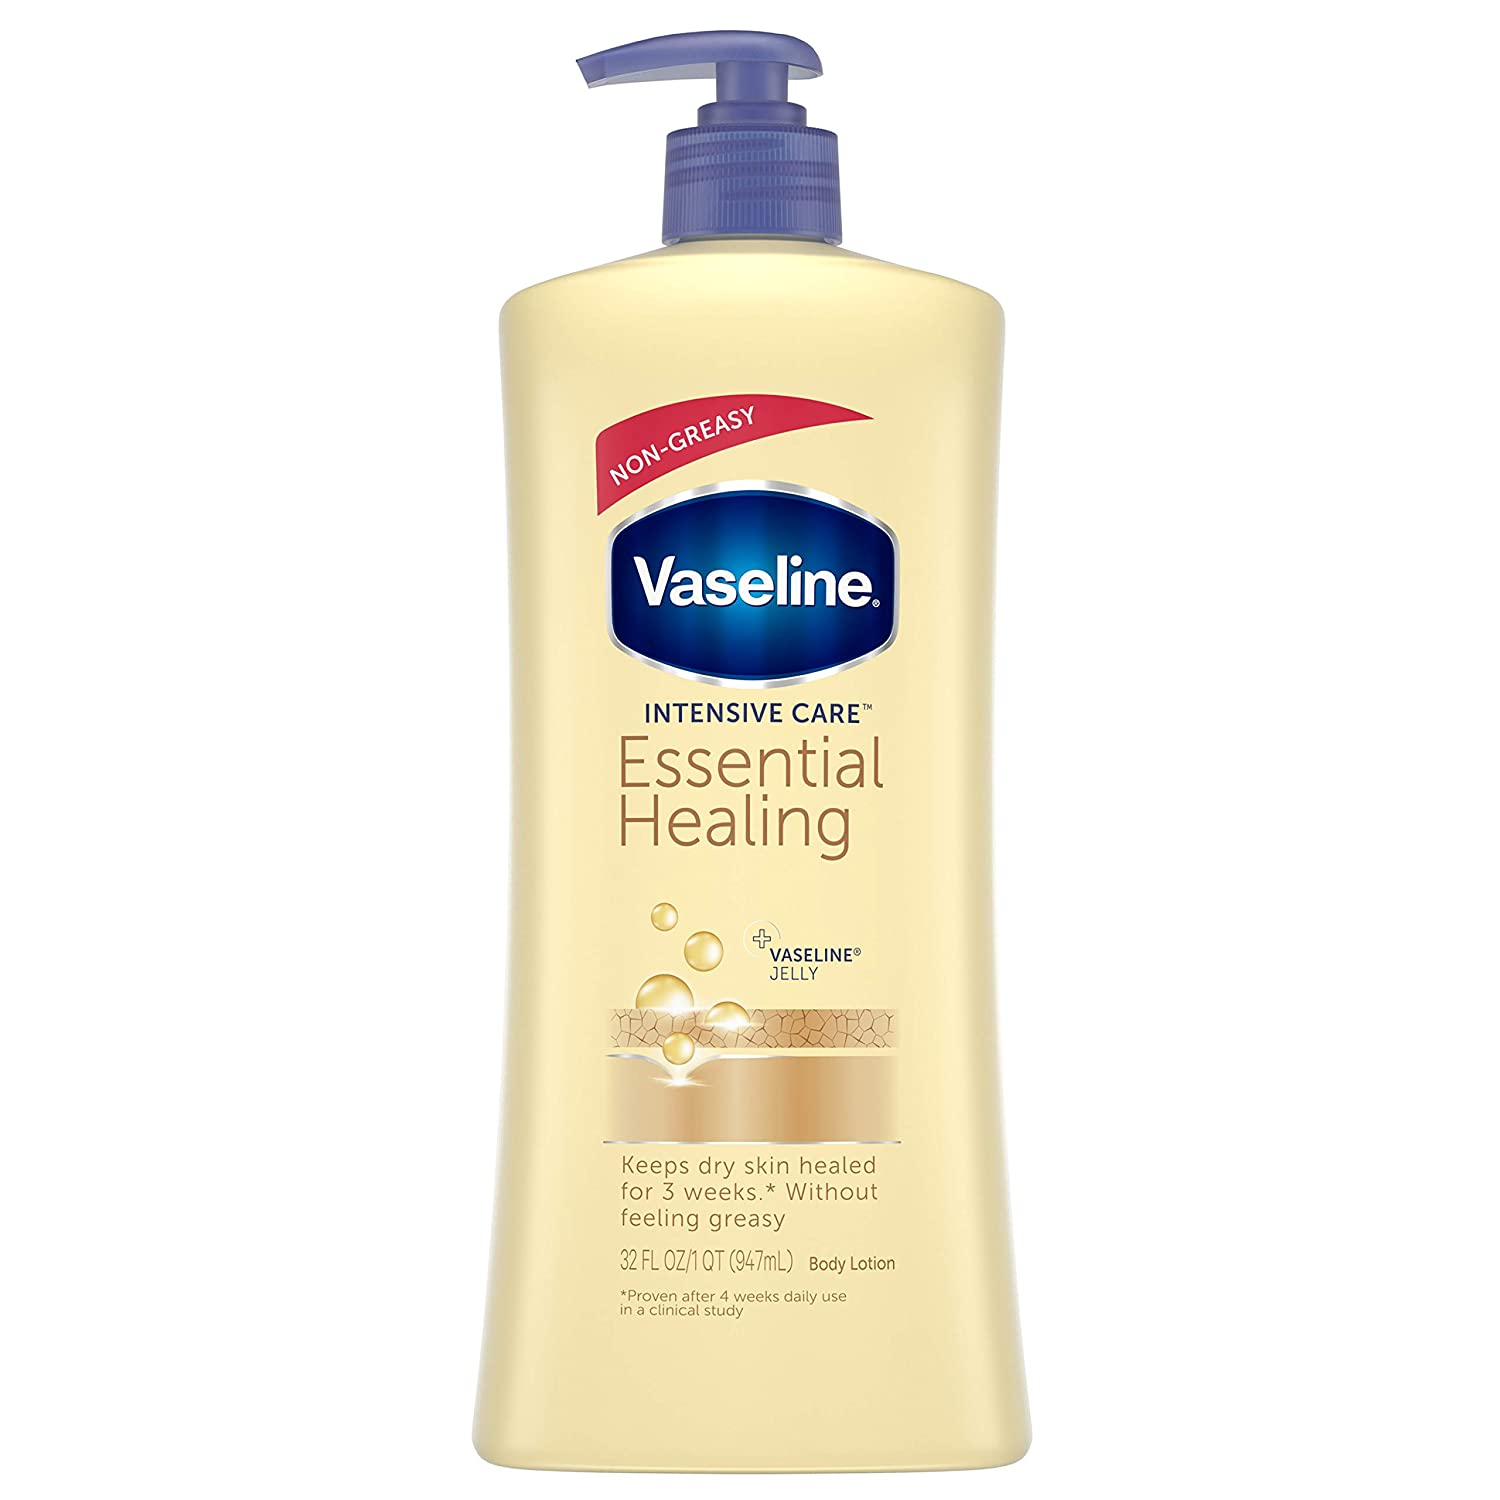 Vaseline Intensive Care Body Lotion, Essential Healing, 32 oz